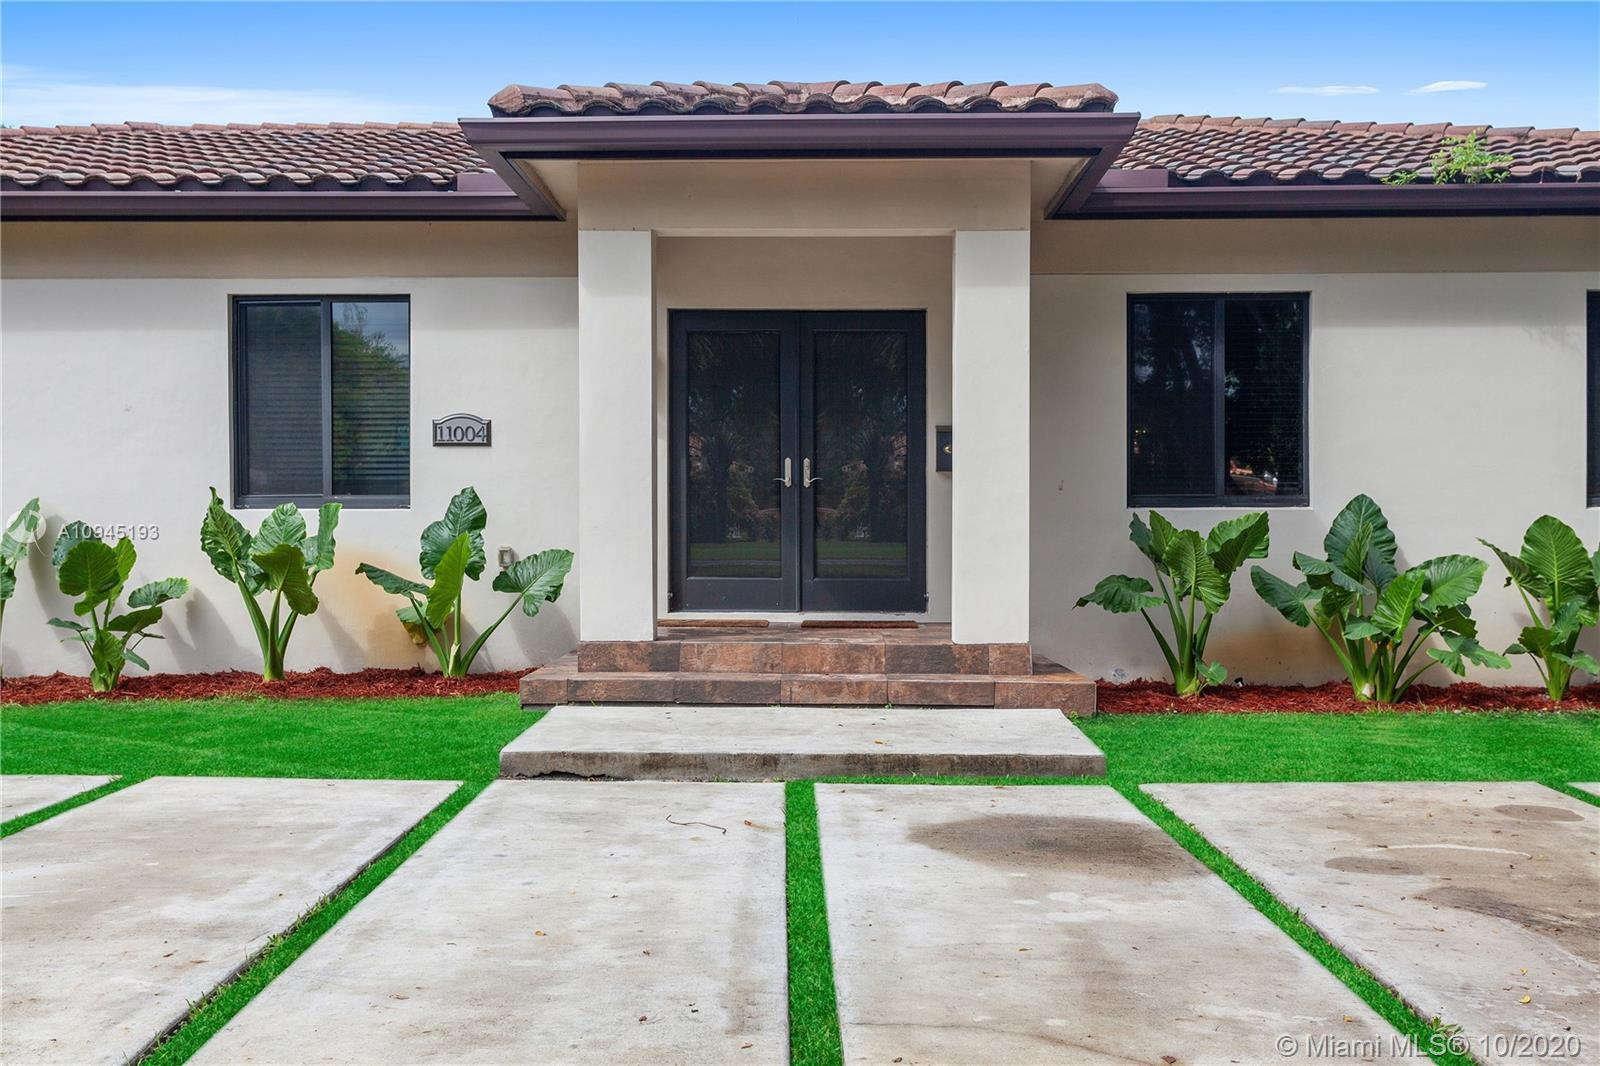 This new construction home is nestled on a double lot in the sought after Miami Shores neighborhood.